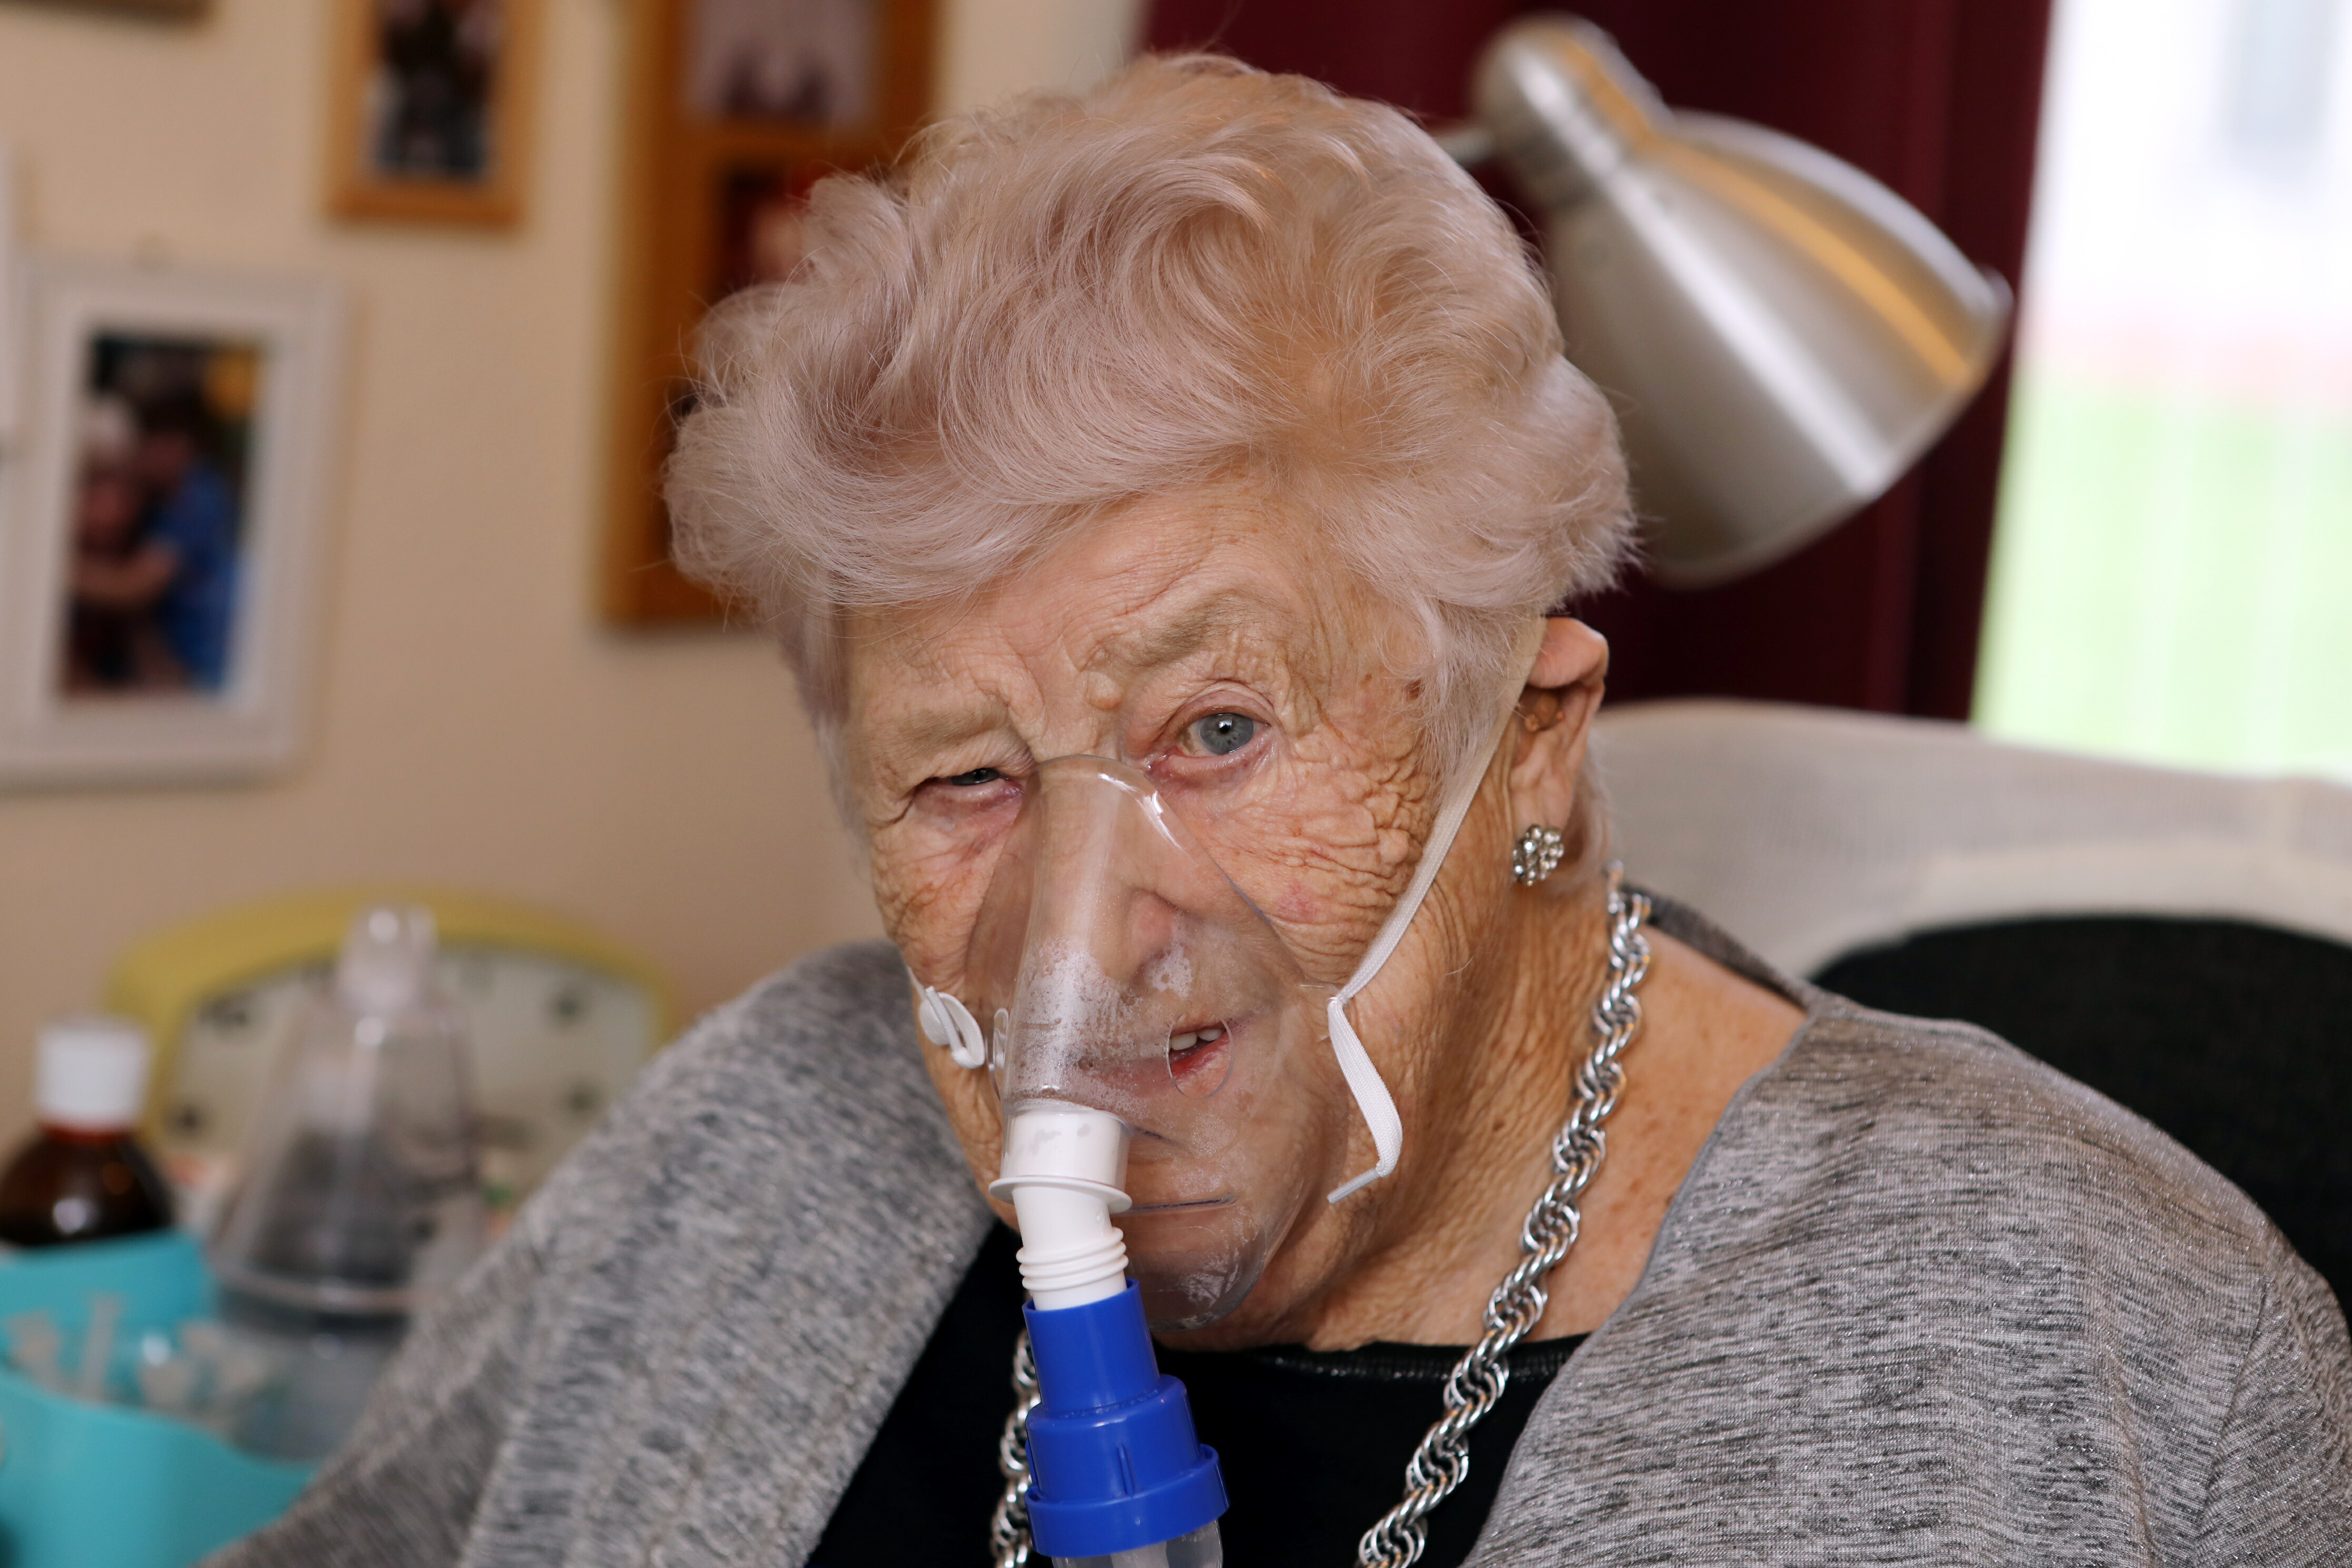 COPD sufferer Annie Crowe, 90, gave up smoking just four years ago and is now on oxygen 18 hours a day